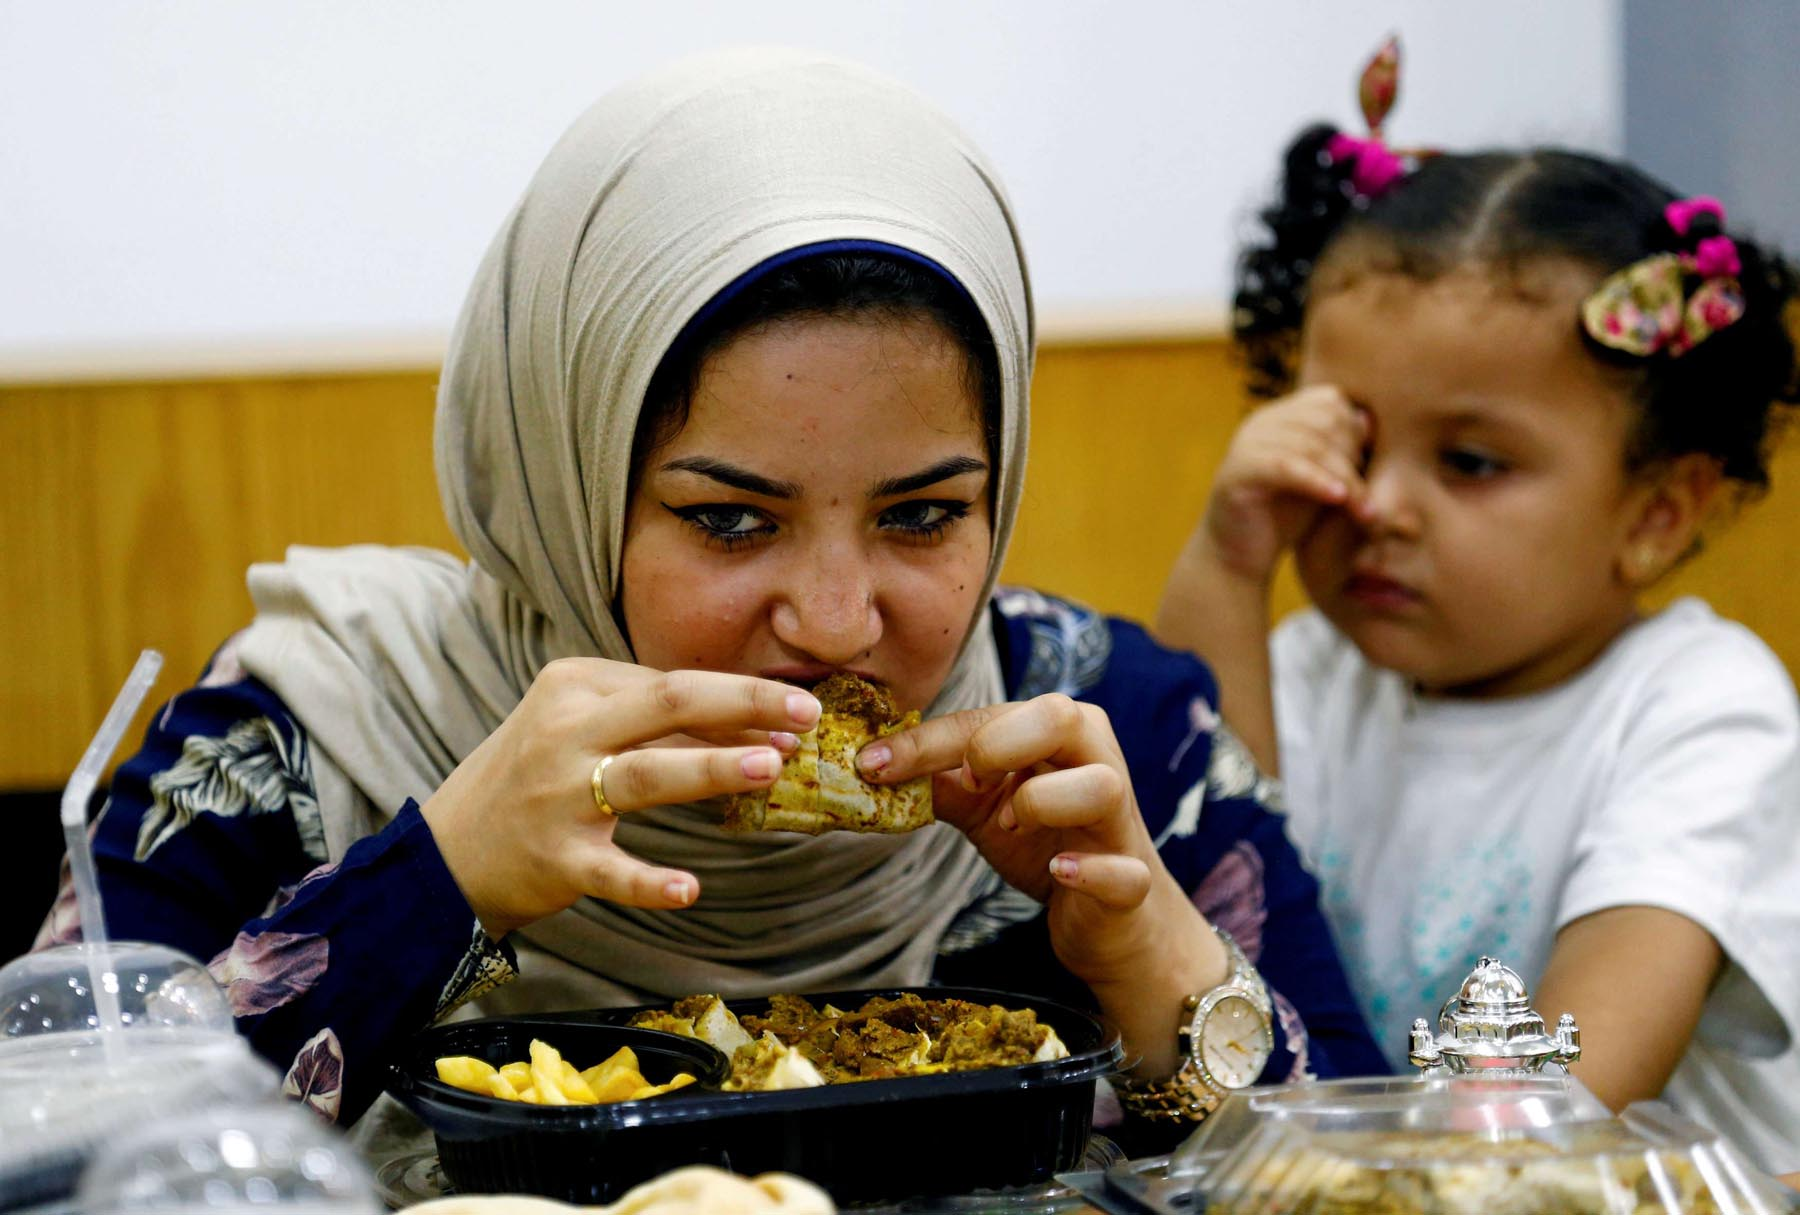 Unhealthy habits. A woman eats at a fast food restaurant in Damanhour.